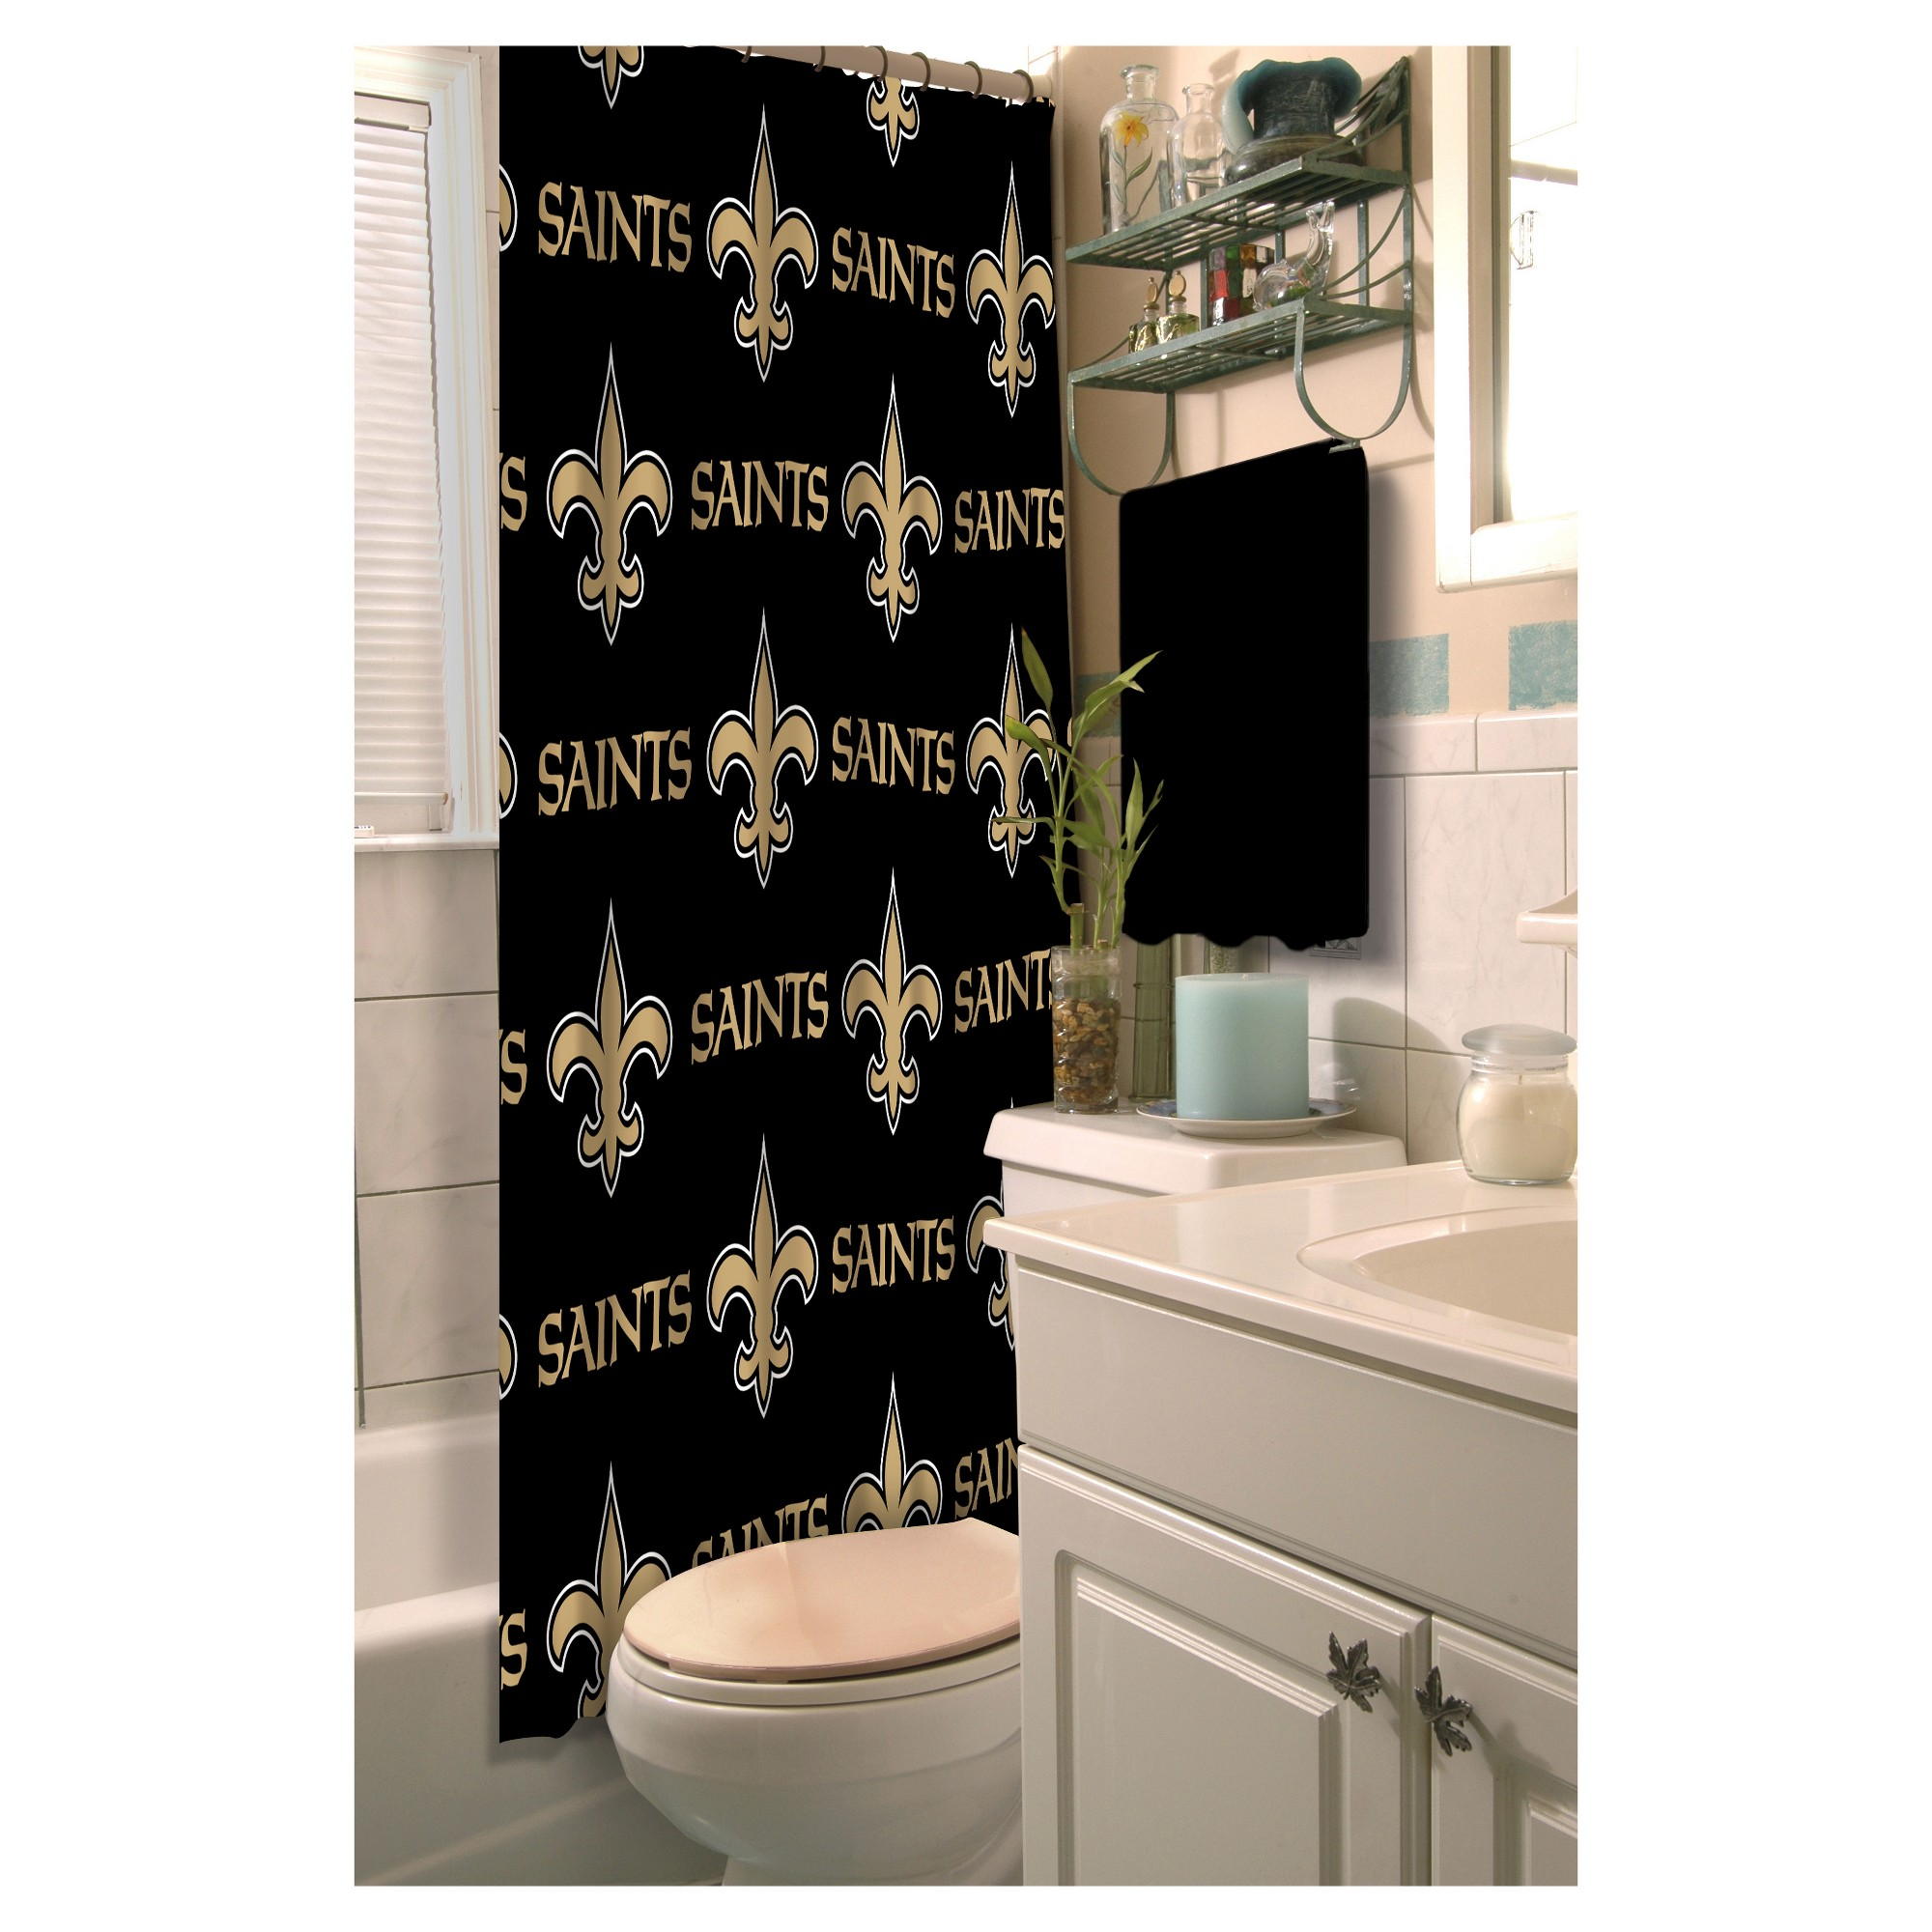 new pin shower rings curtain northwest products saints orleans